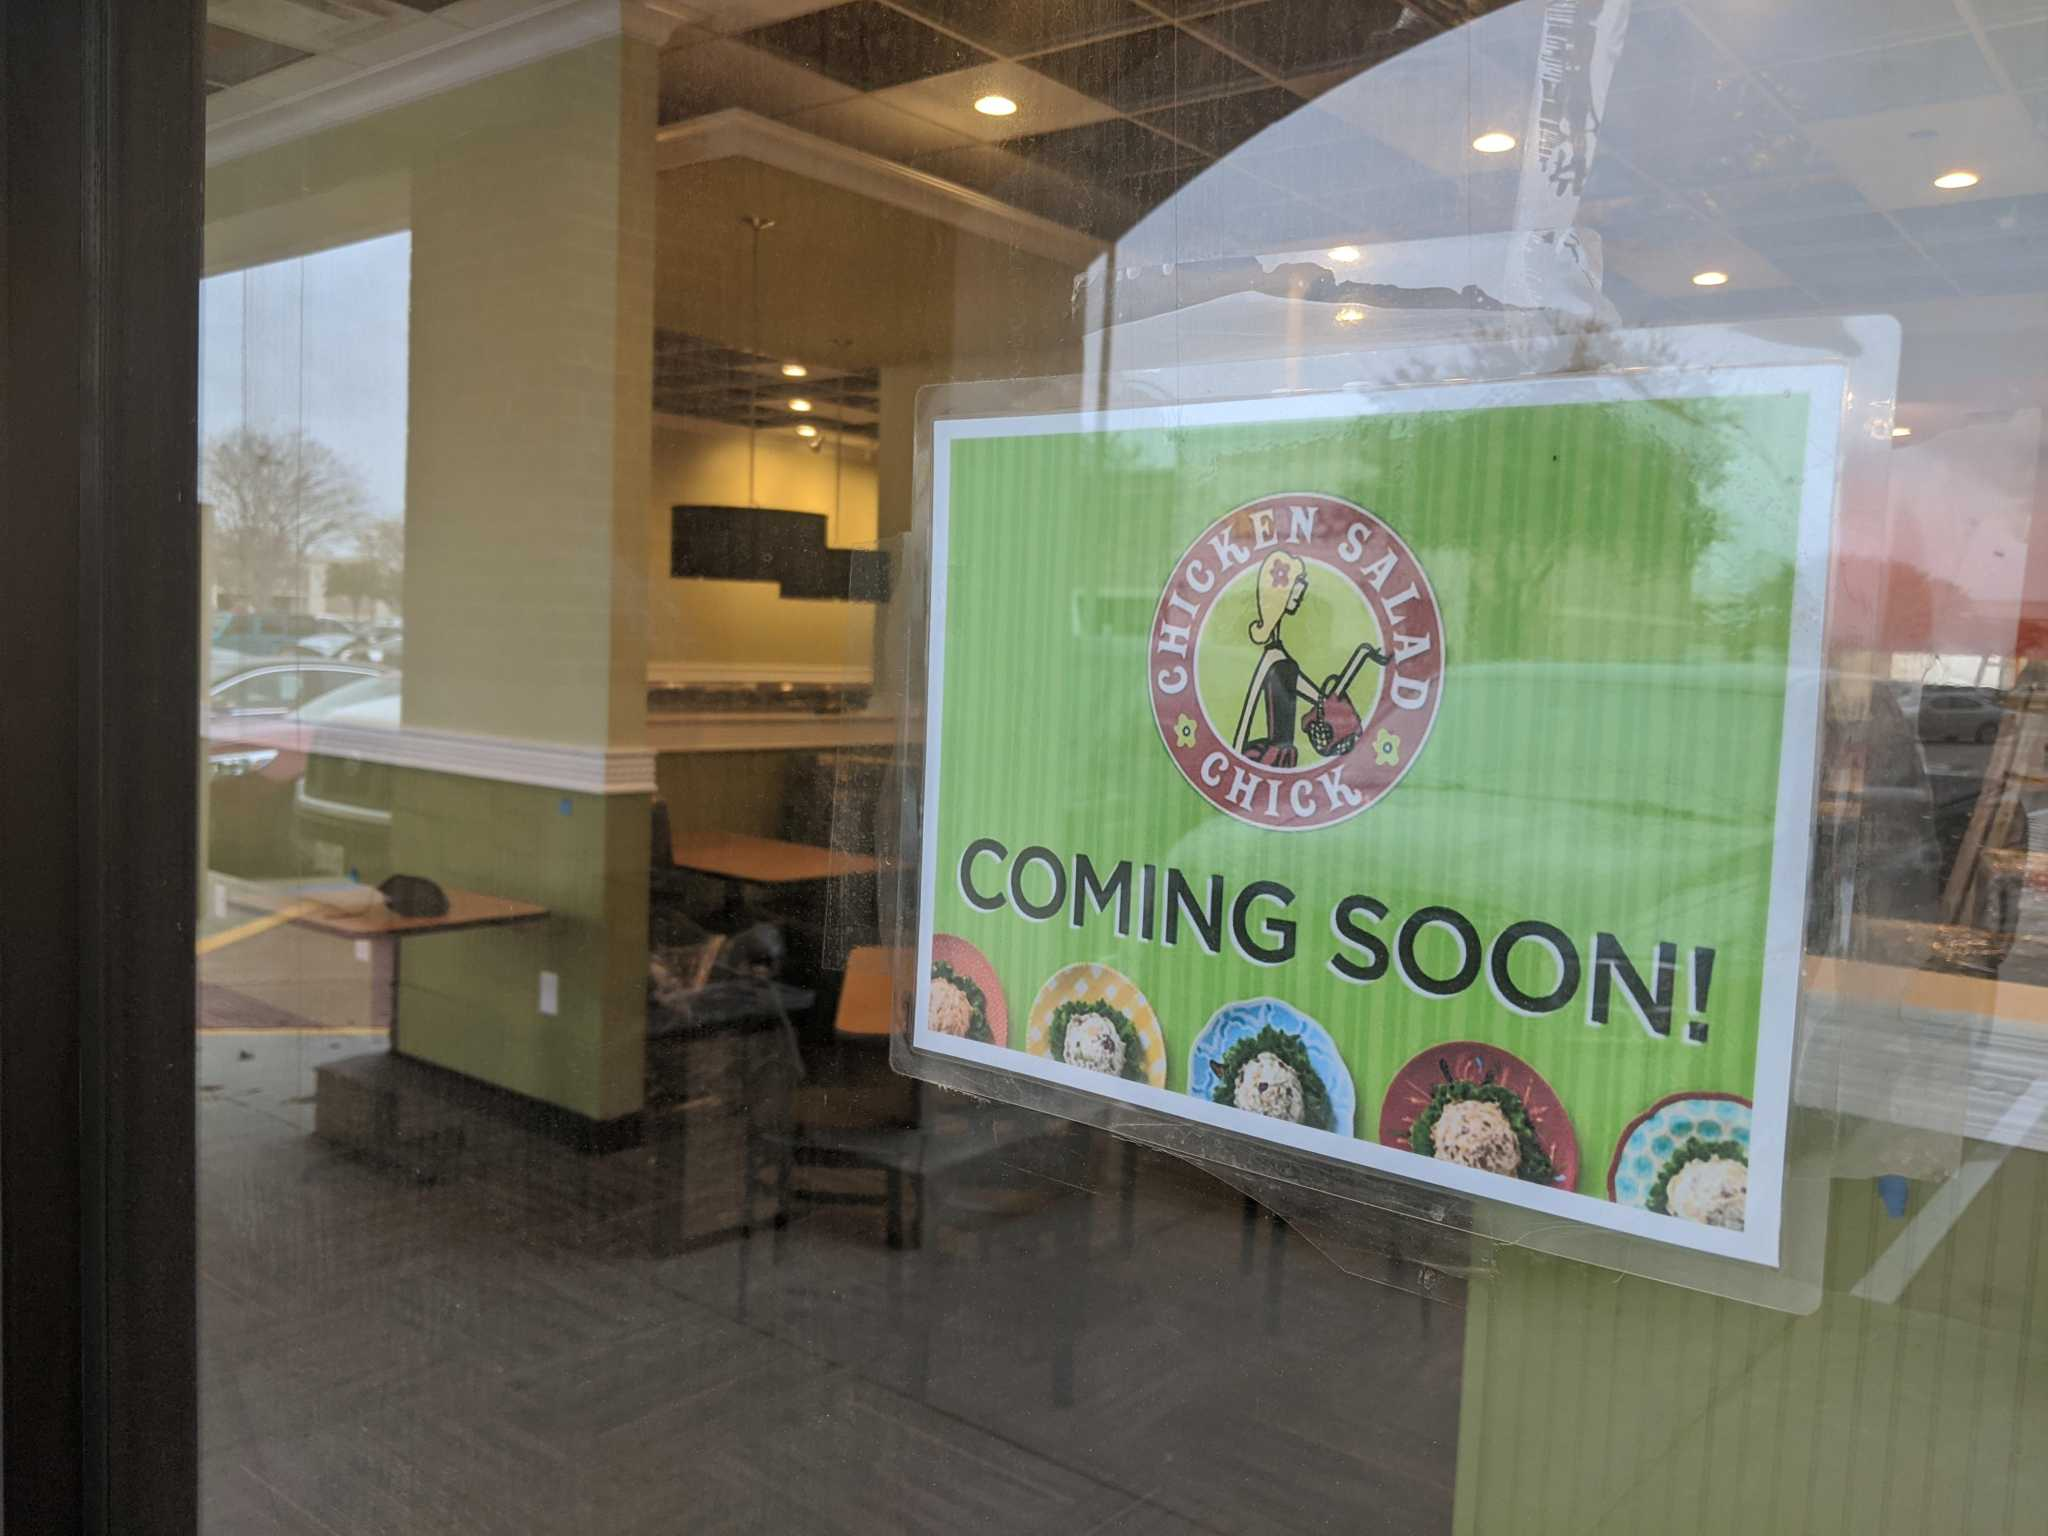 Business roundups: Chicken Salad Chick, Paradise Nails hosting ribbon cuttings